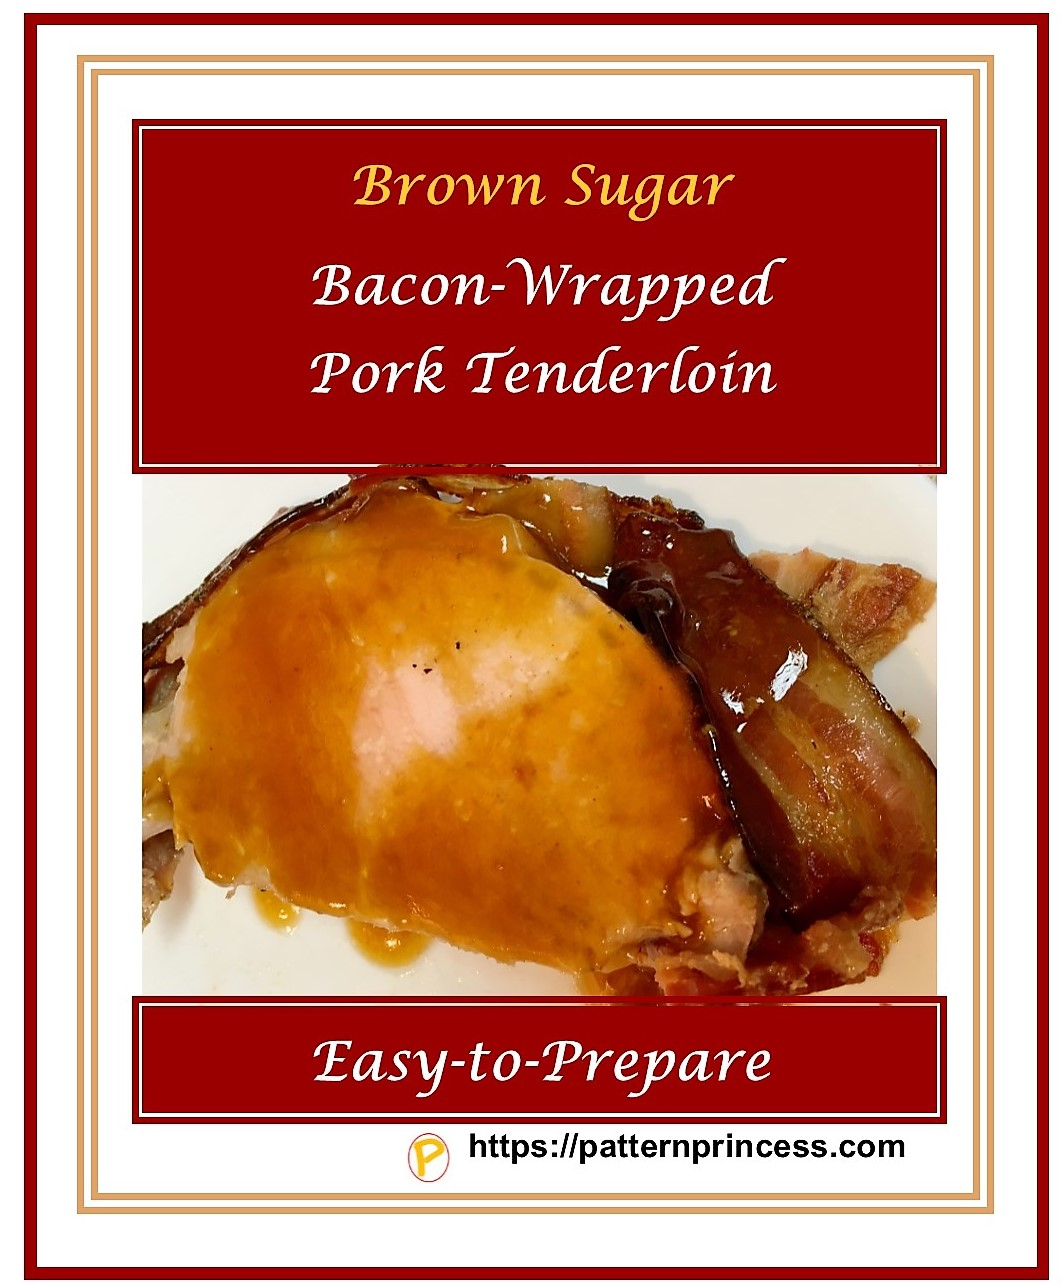 Brown Sugar Bacon-Wrapped Pork Tenderloin 1